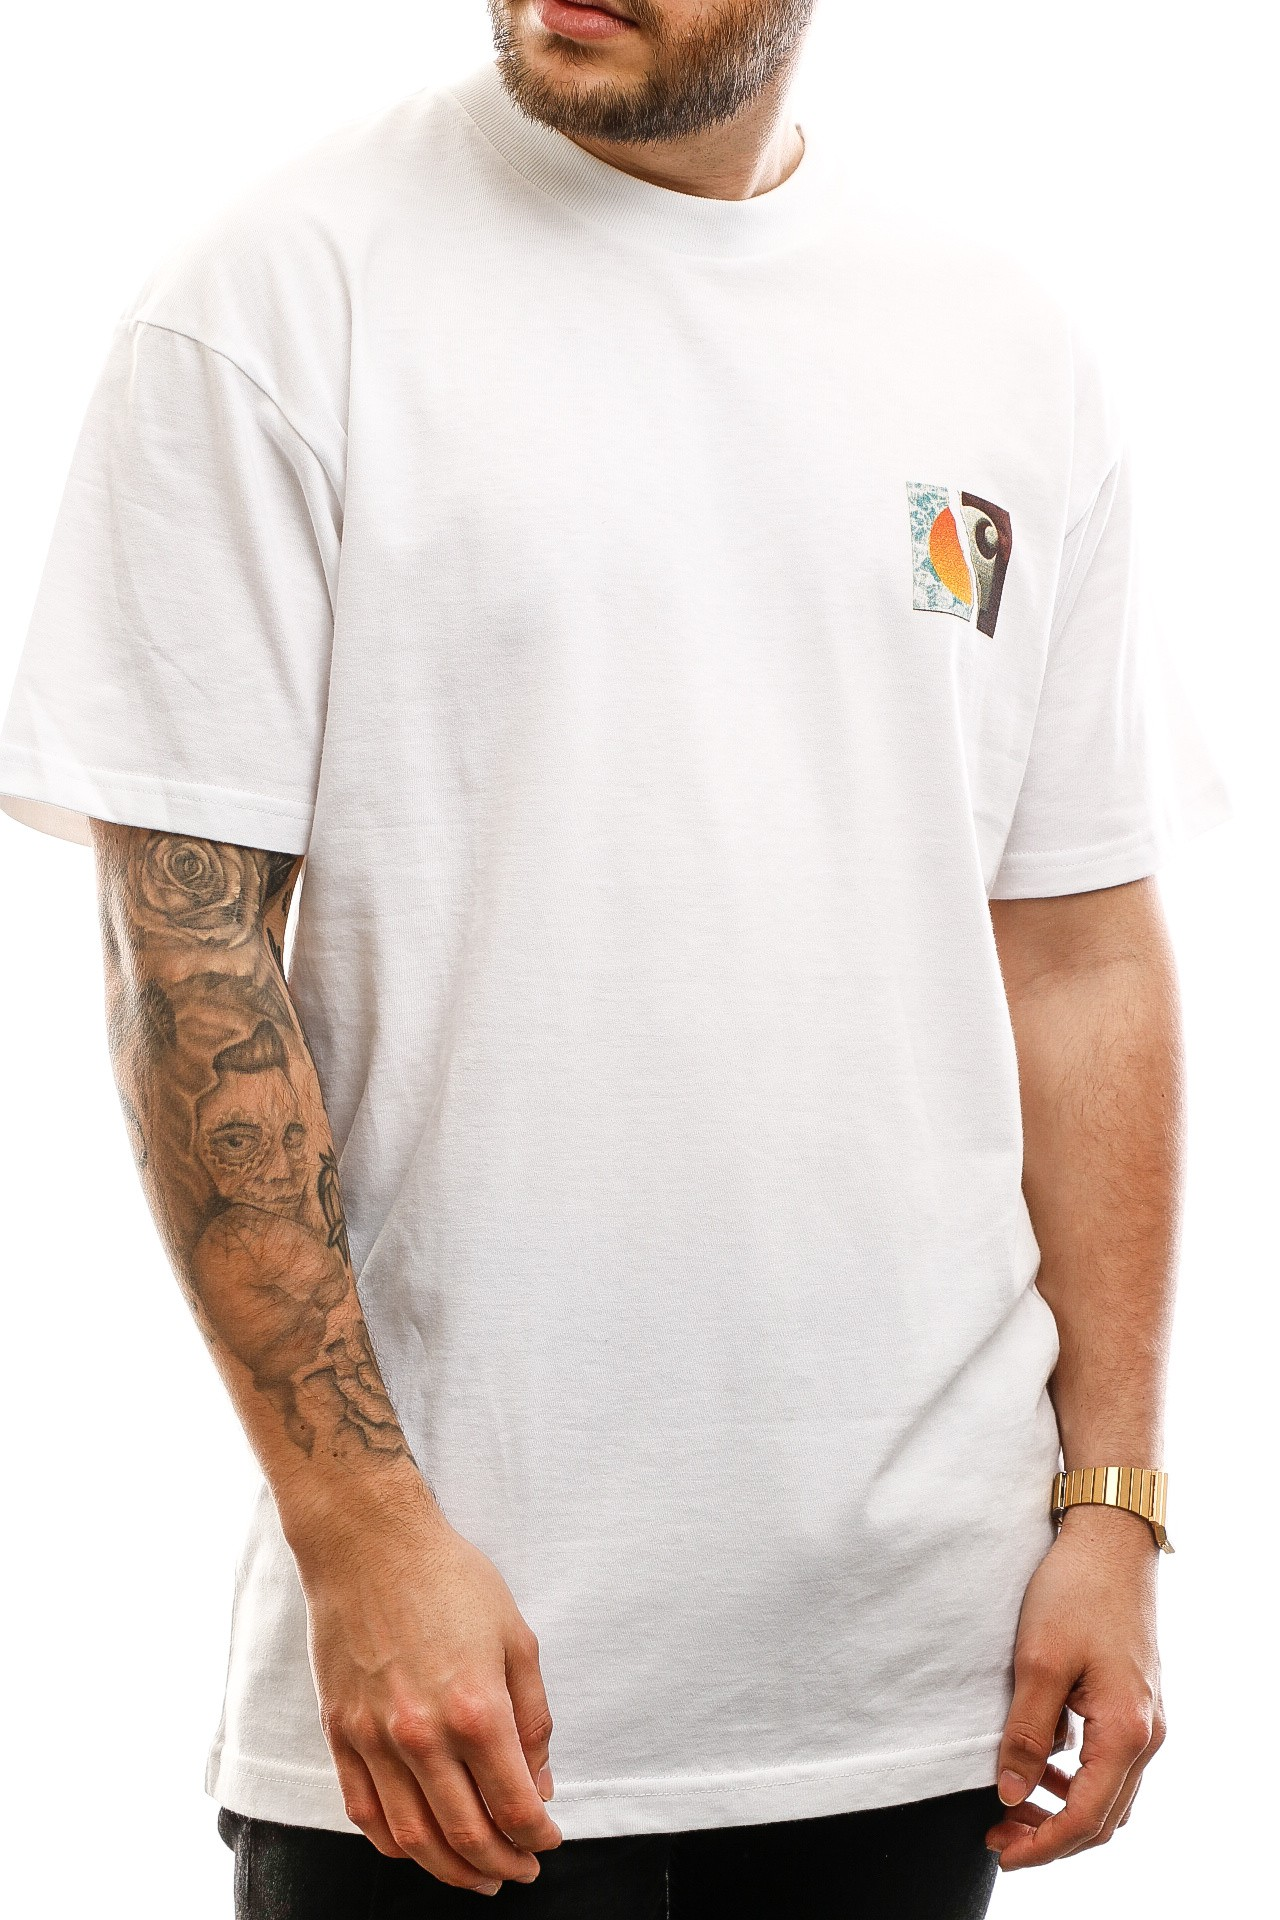 Afbeelding van Carhartt T-shirt S/S Backpages T-Shirt White I027757